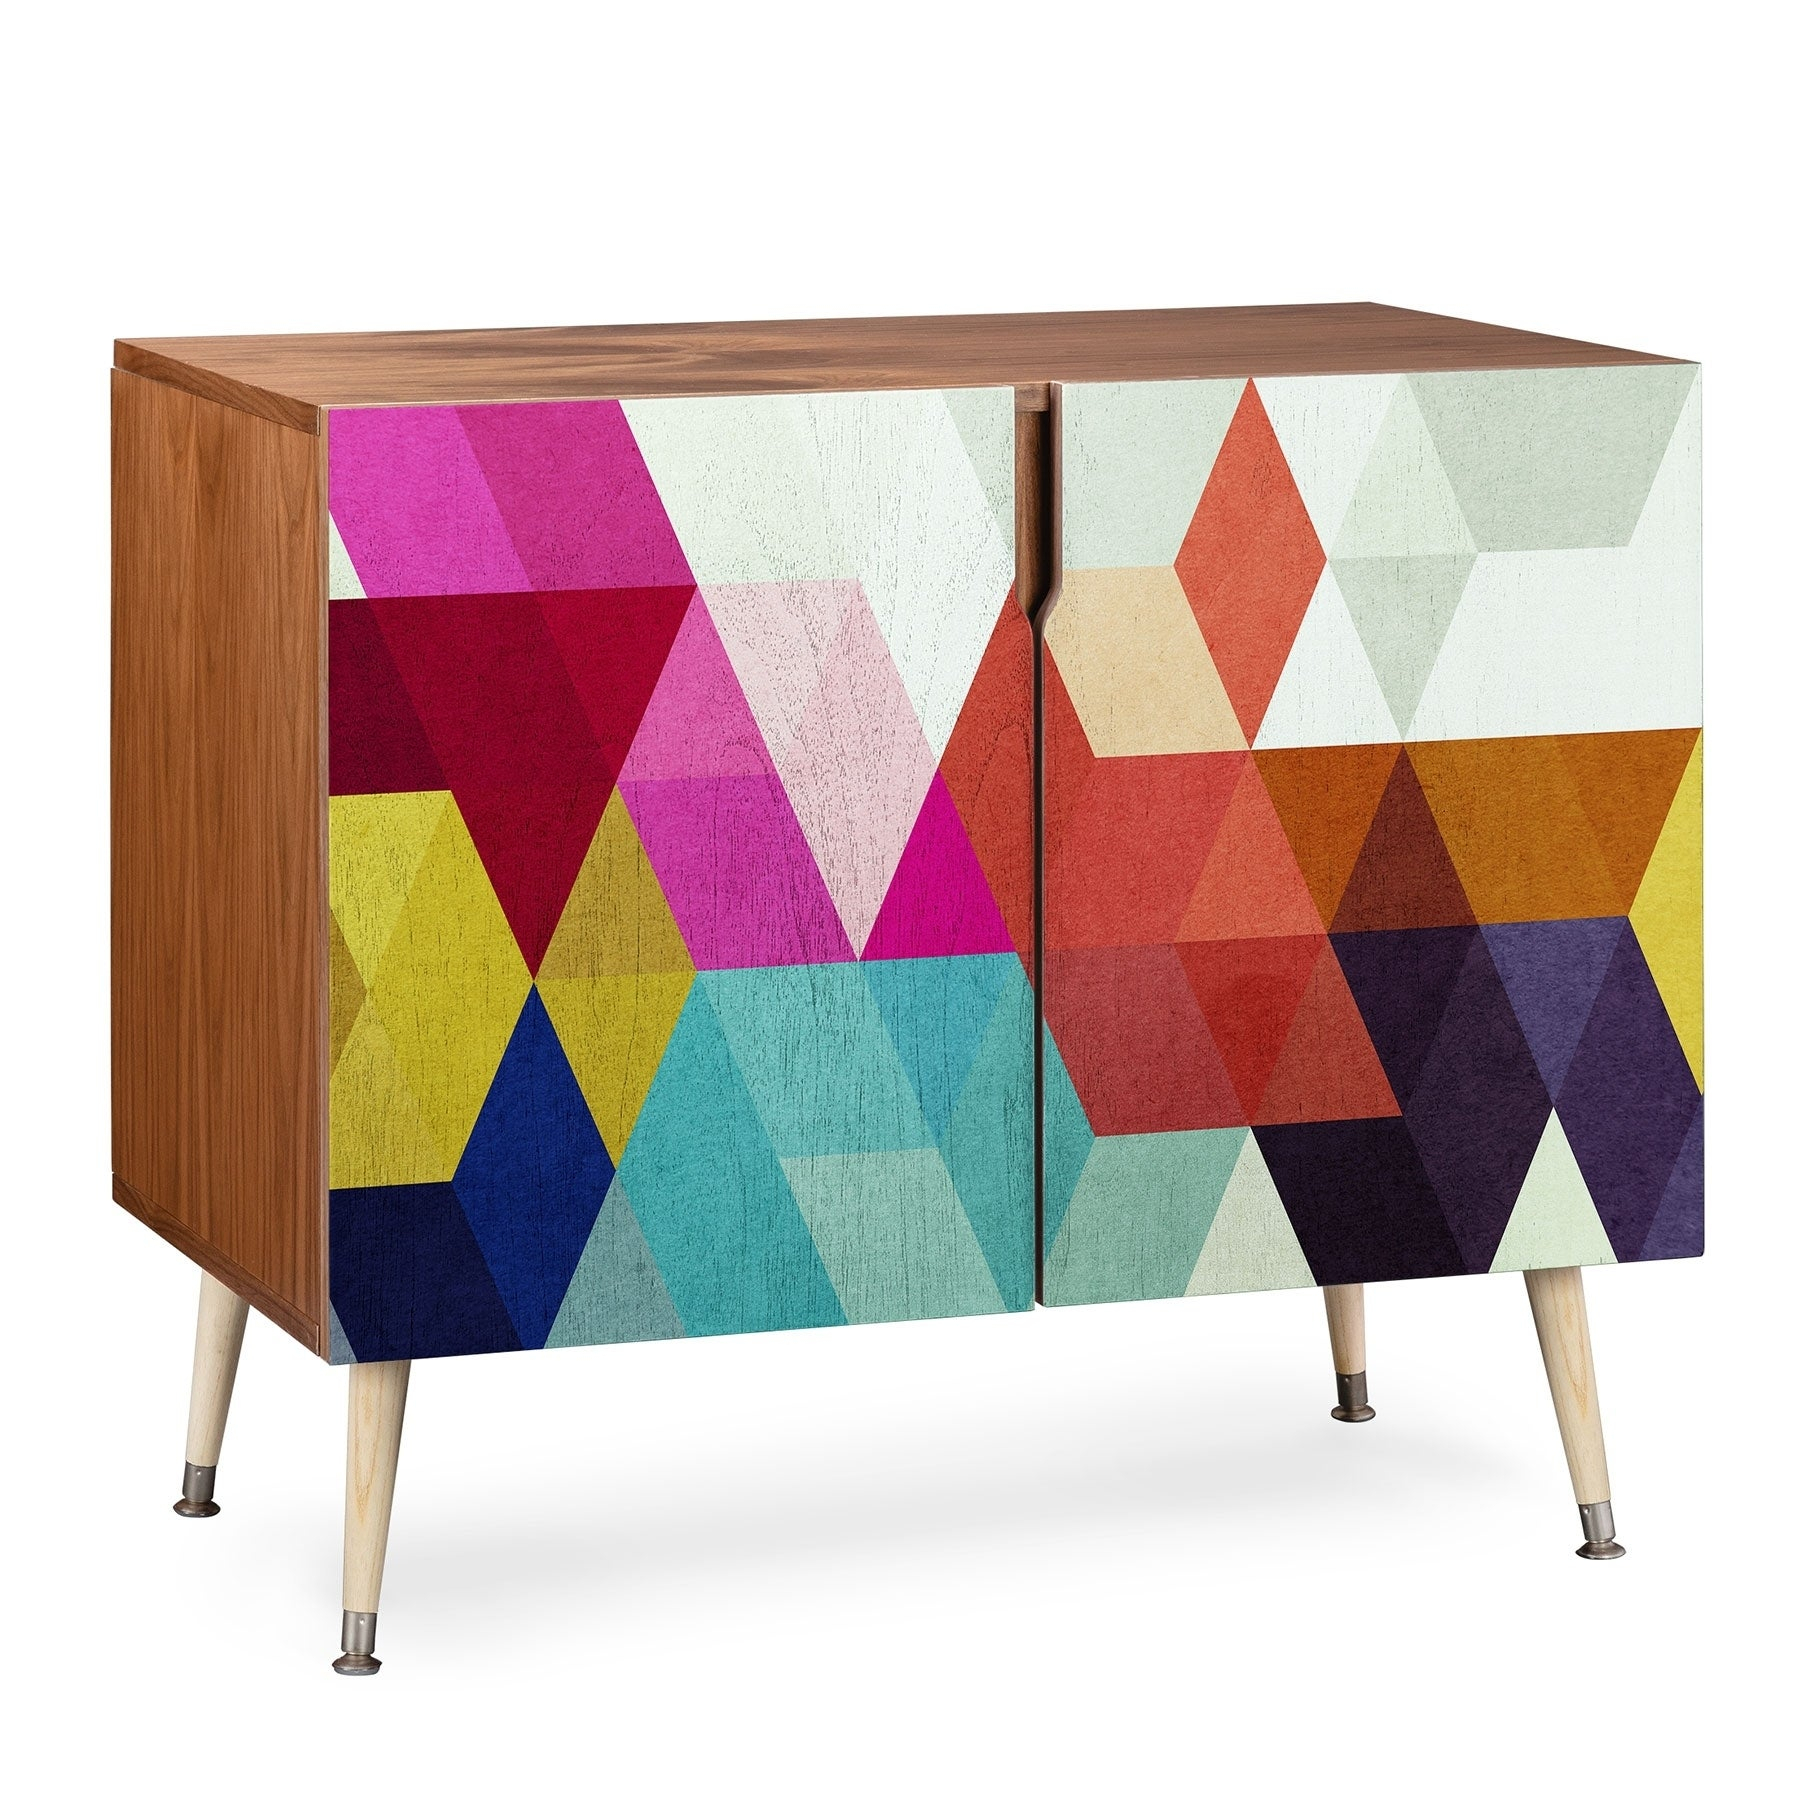 Deny Designs Modele 7 Geometric Credenza (Birch Or Walnut, 3 Leg Options) Intended For Multi Colored Geometric Shapes Credenzas (Photo 14 of 30)